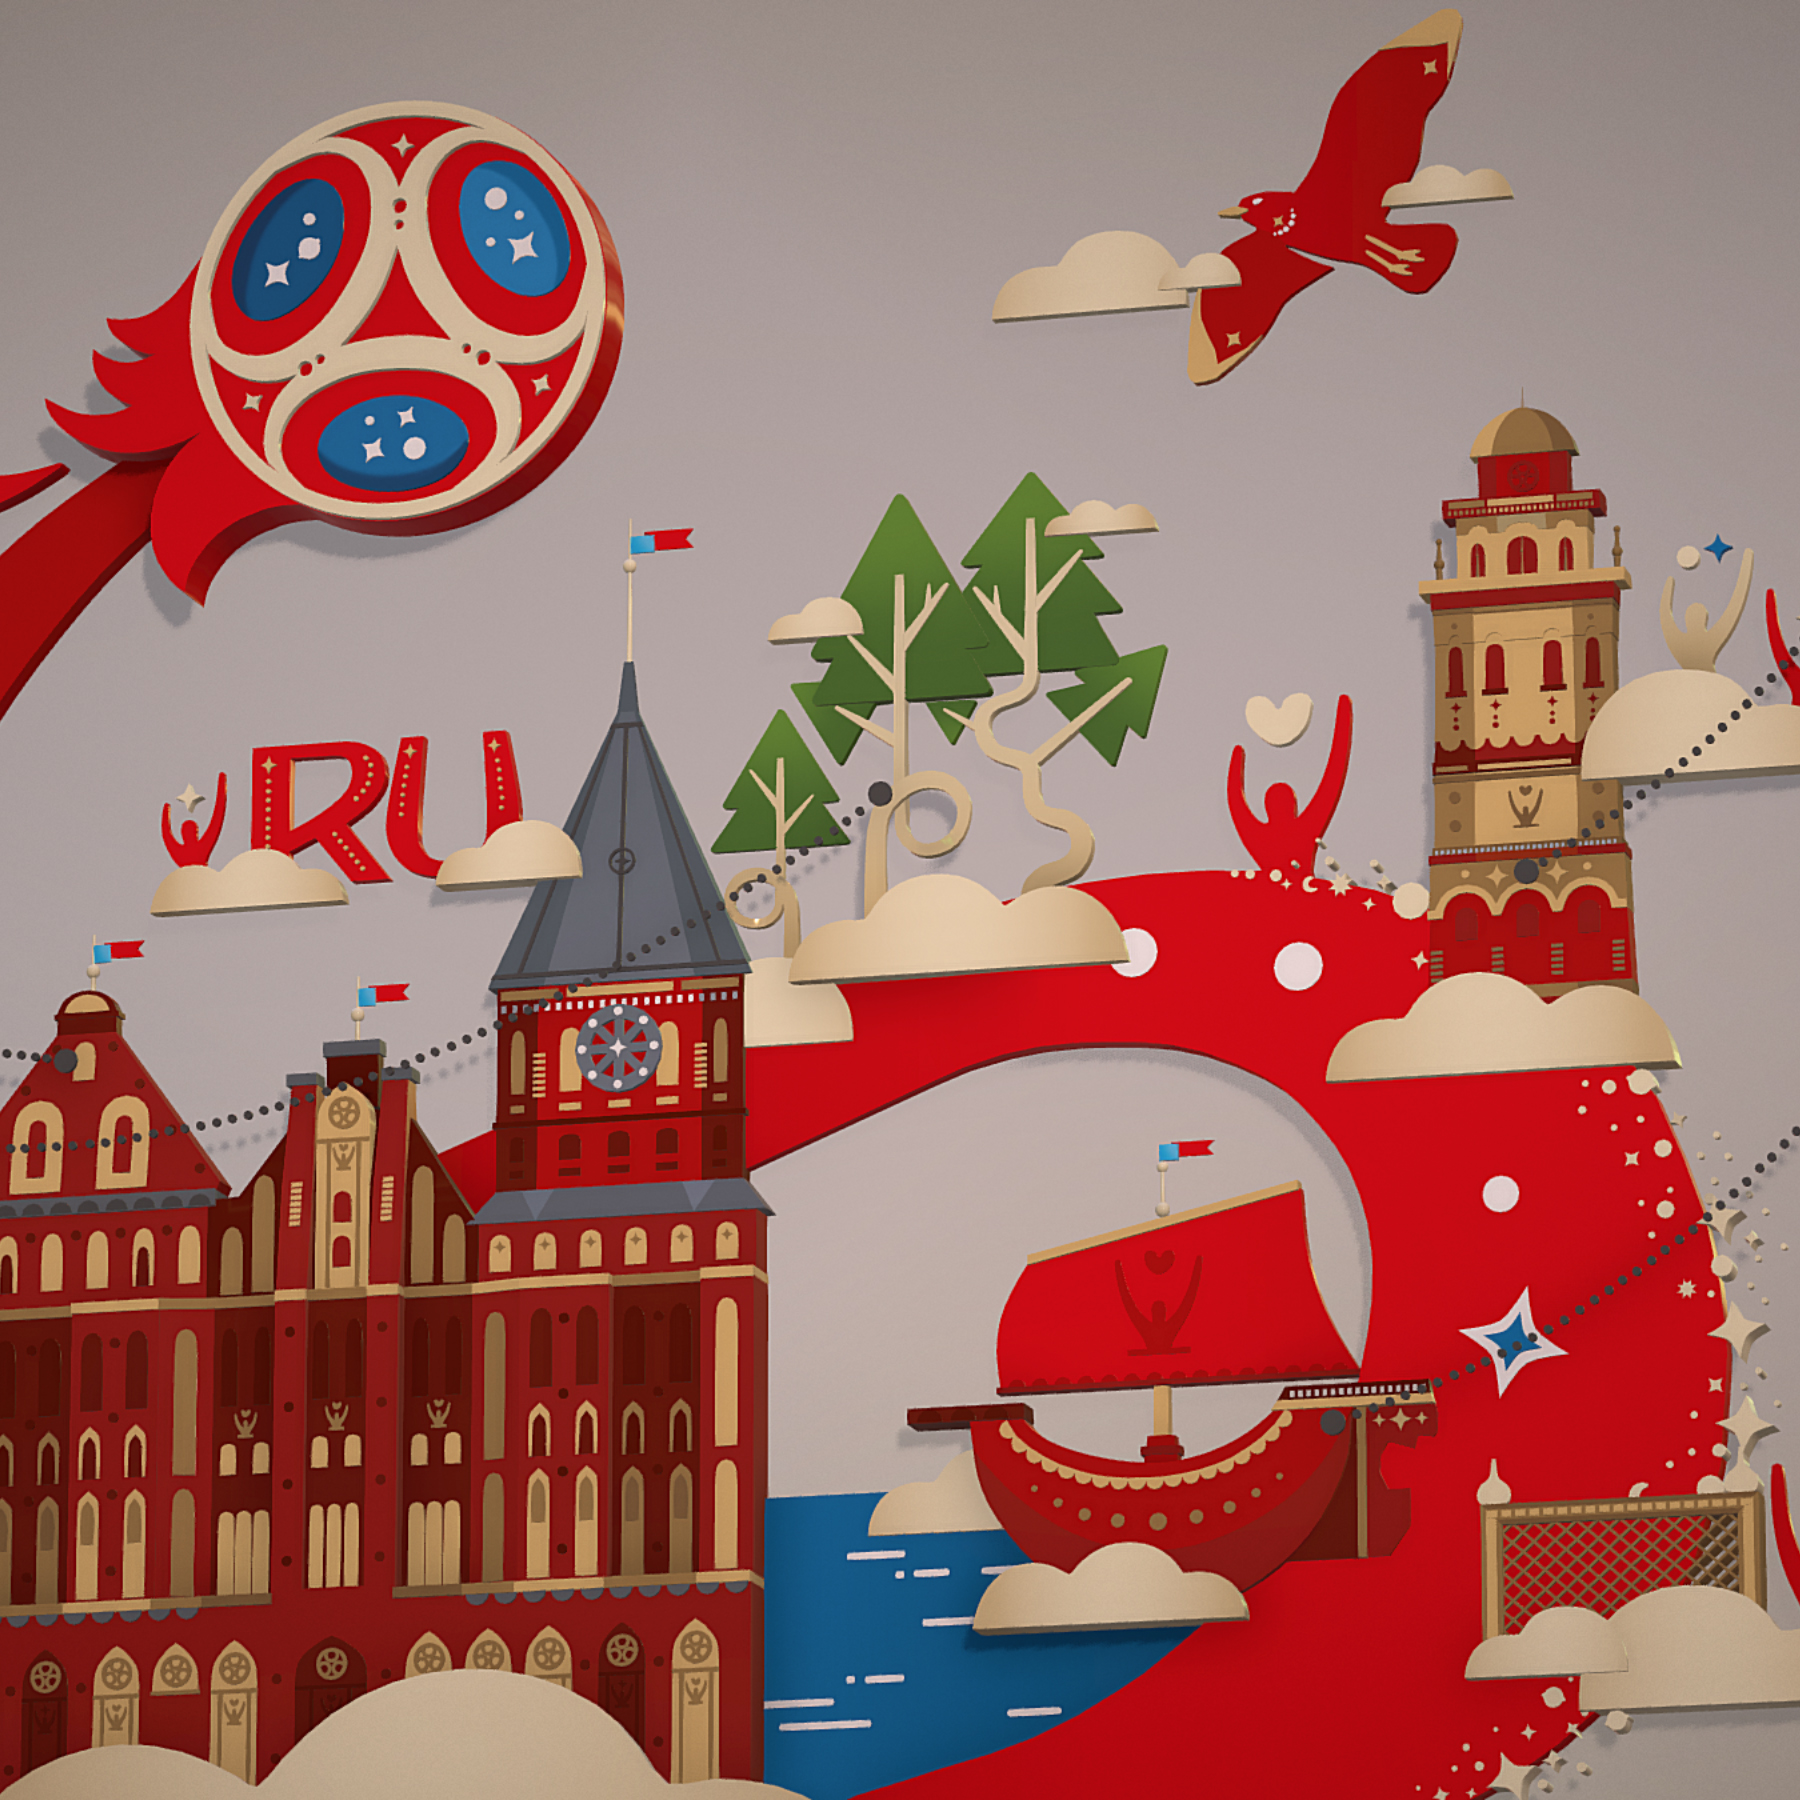 fifa world cup 2018 russia host city kaliningrad 3d model max  fbx jpeg jpg ma mb obj 271620